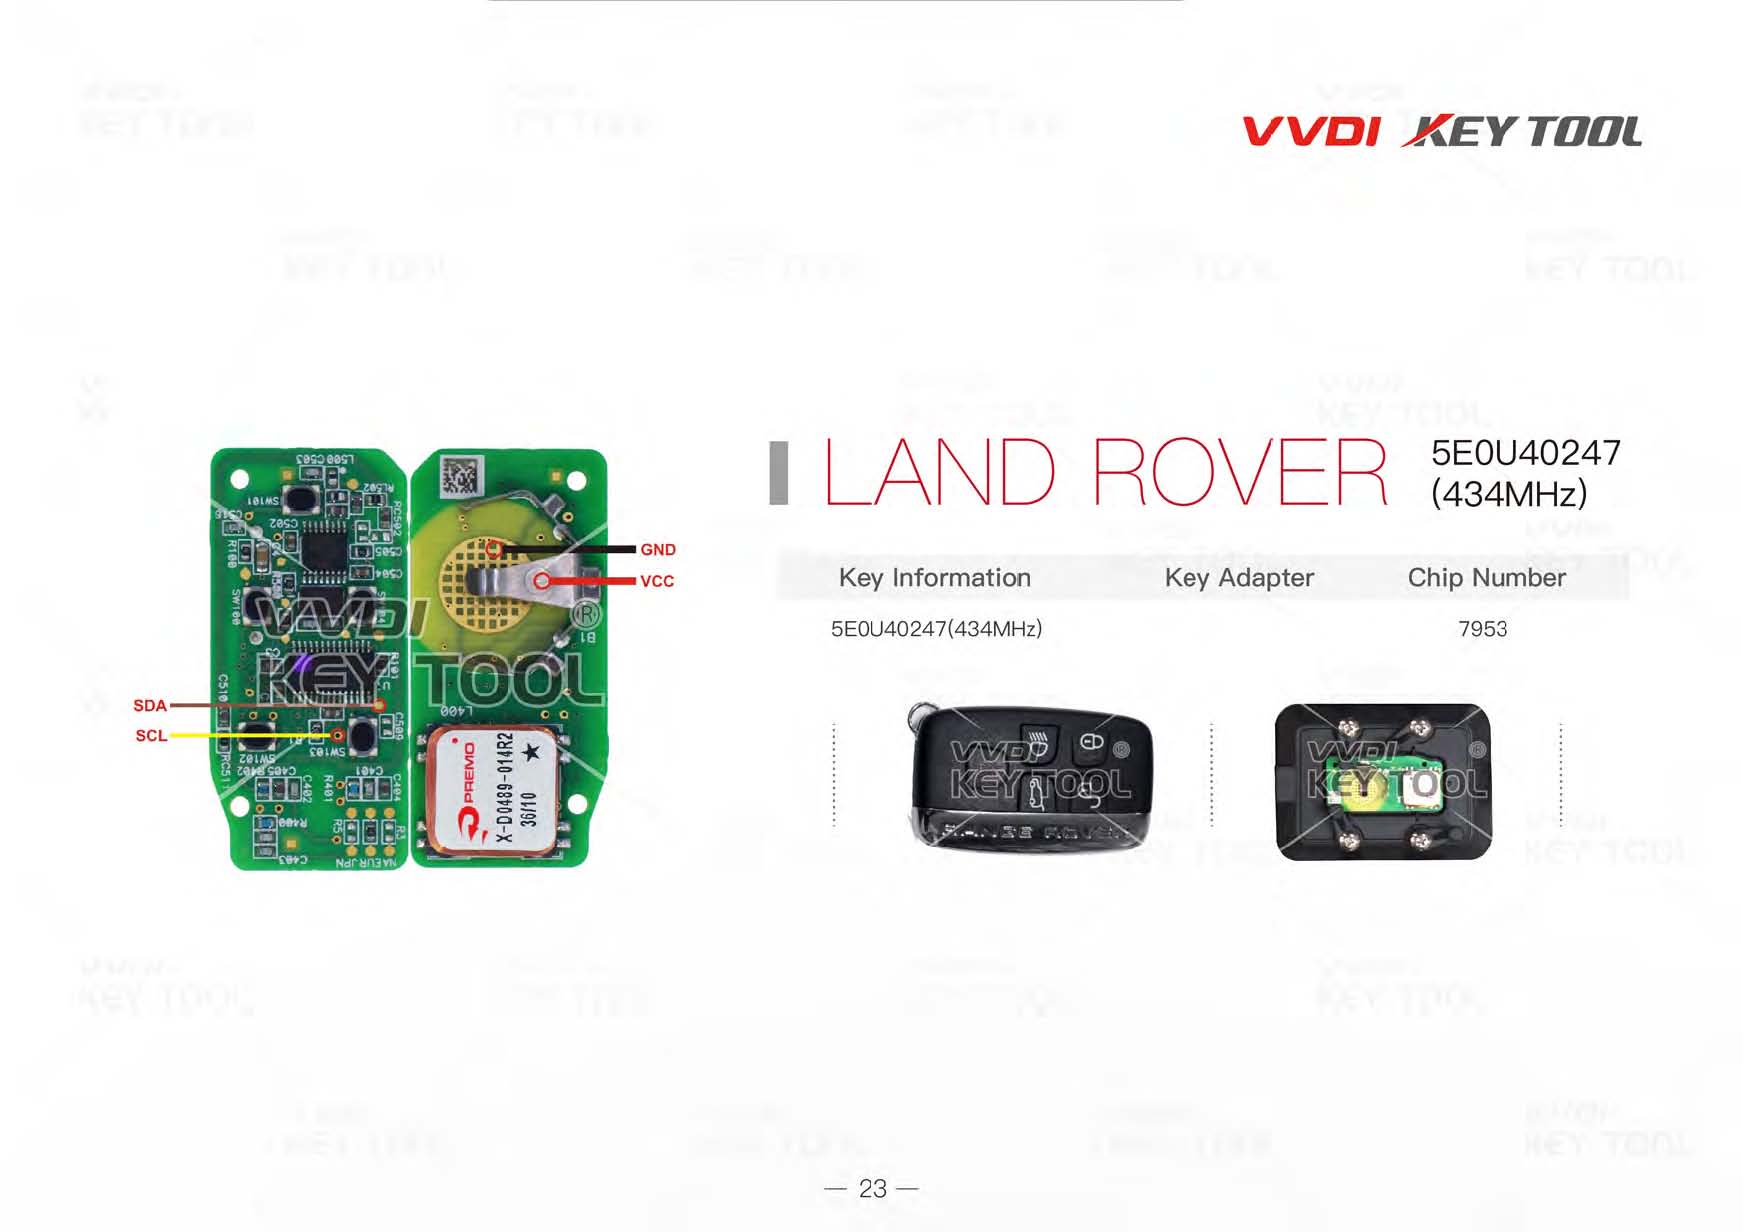 vvdi-key-tool-renew-diagram-23